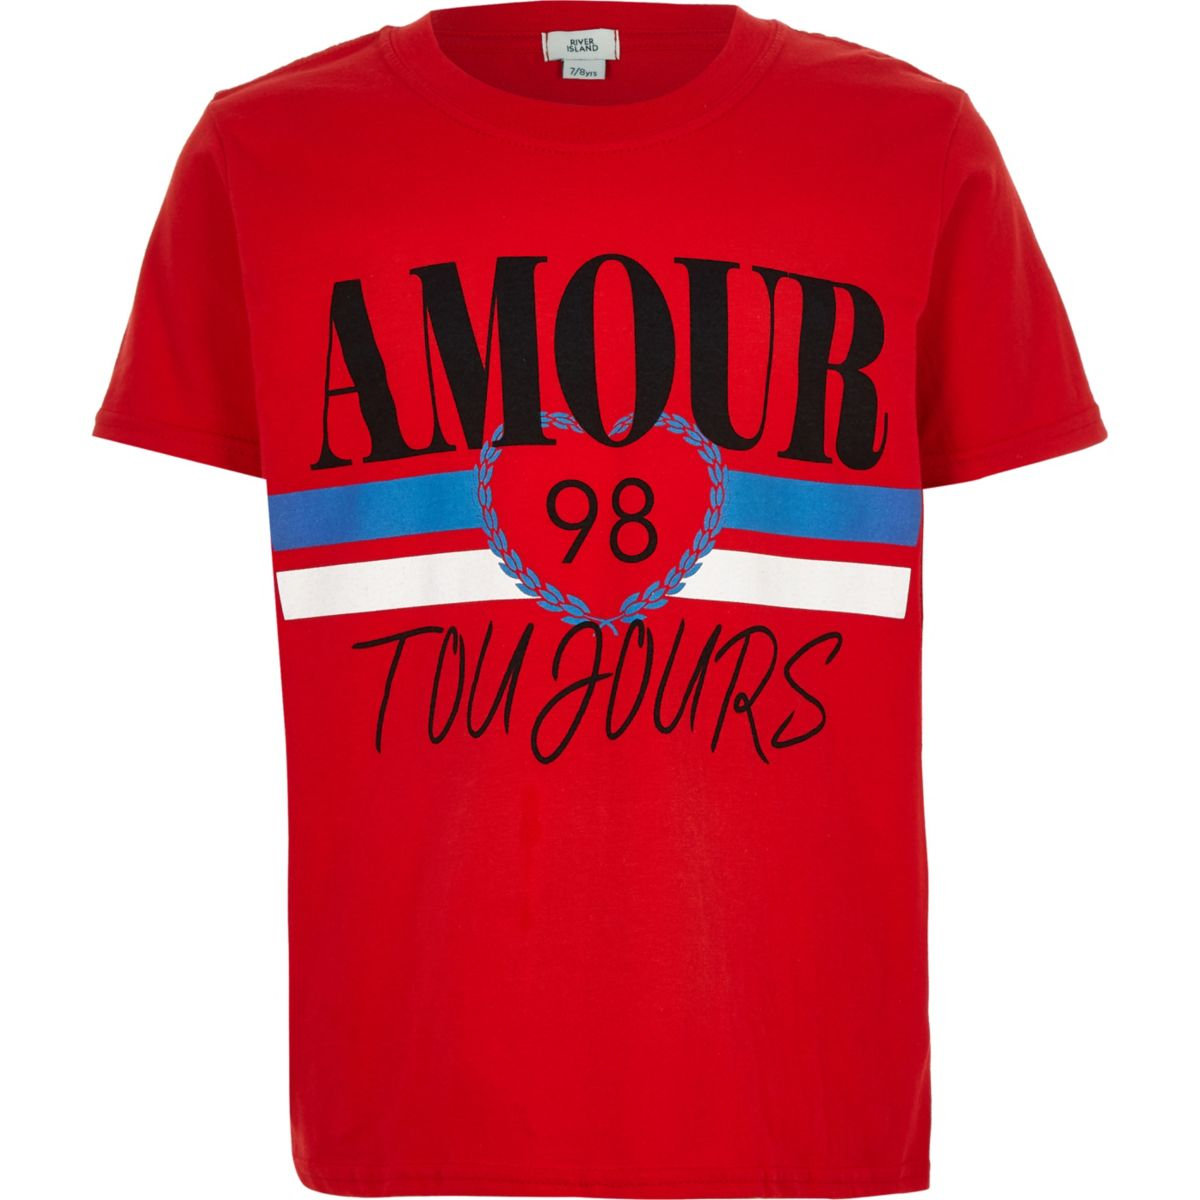 Girls red 'Amour Toujours' T-shirt